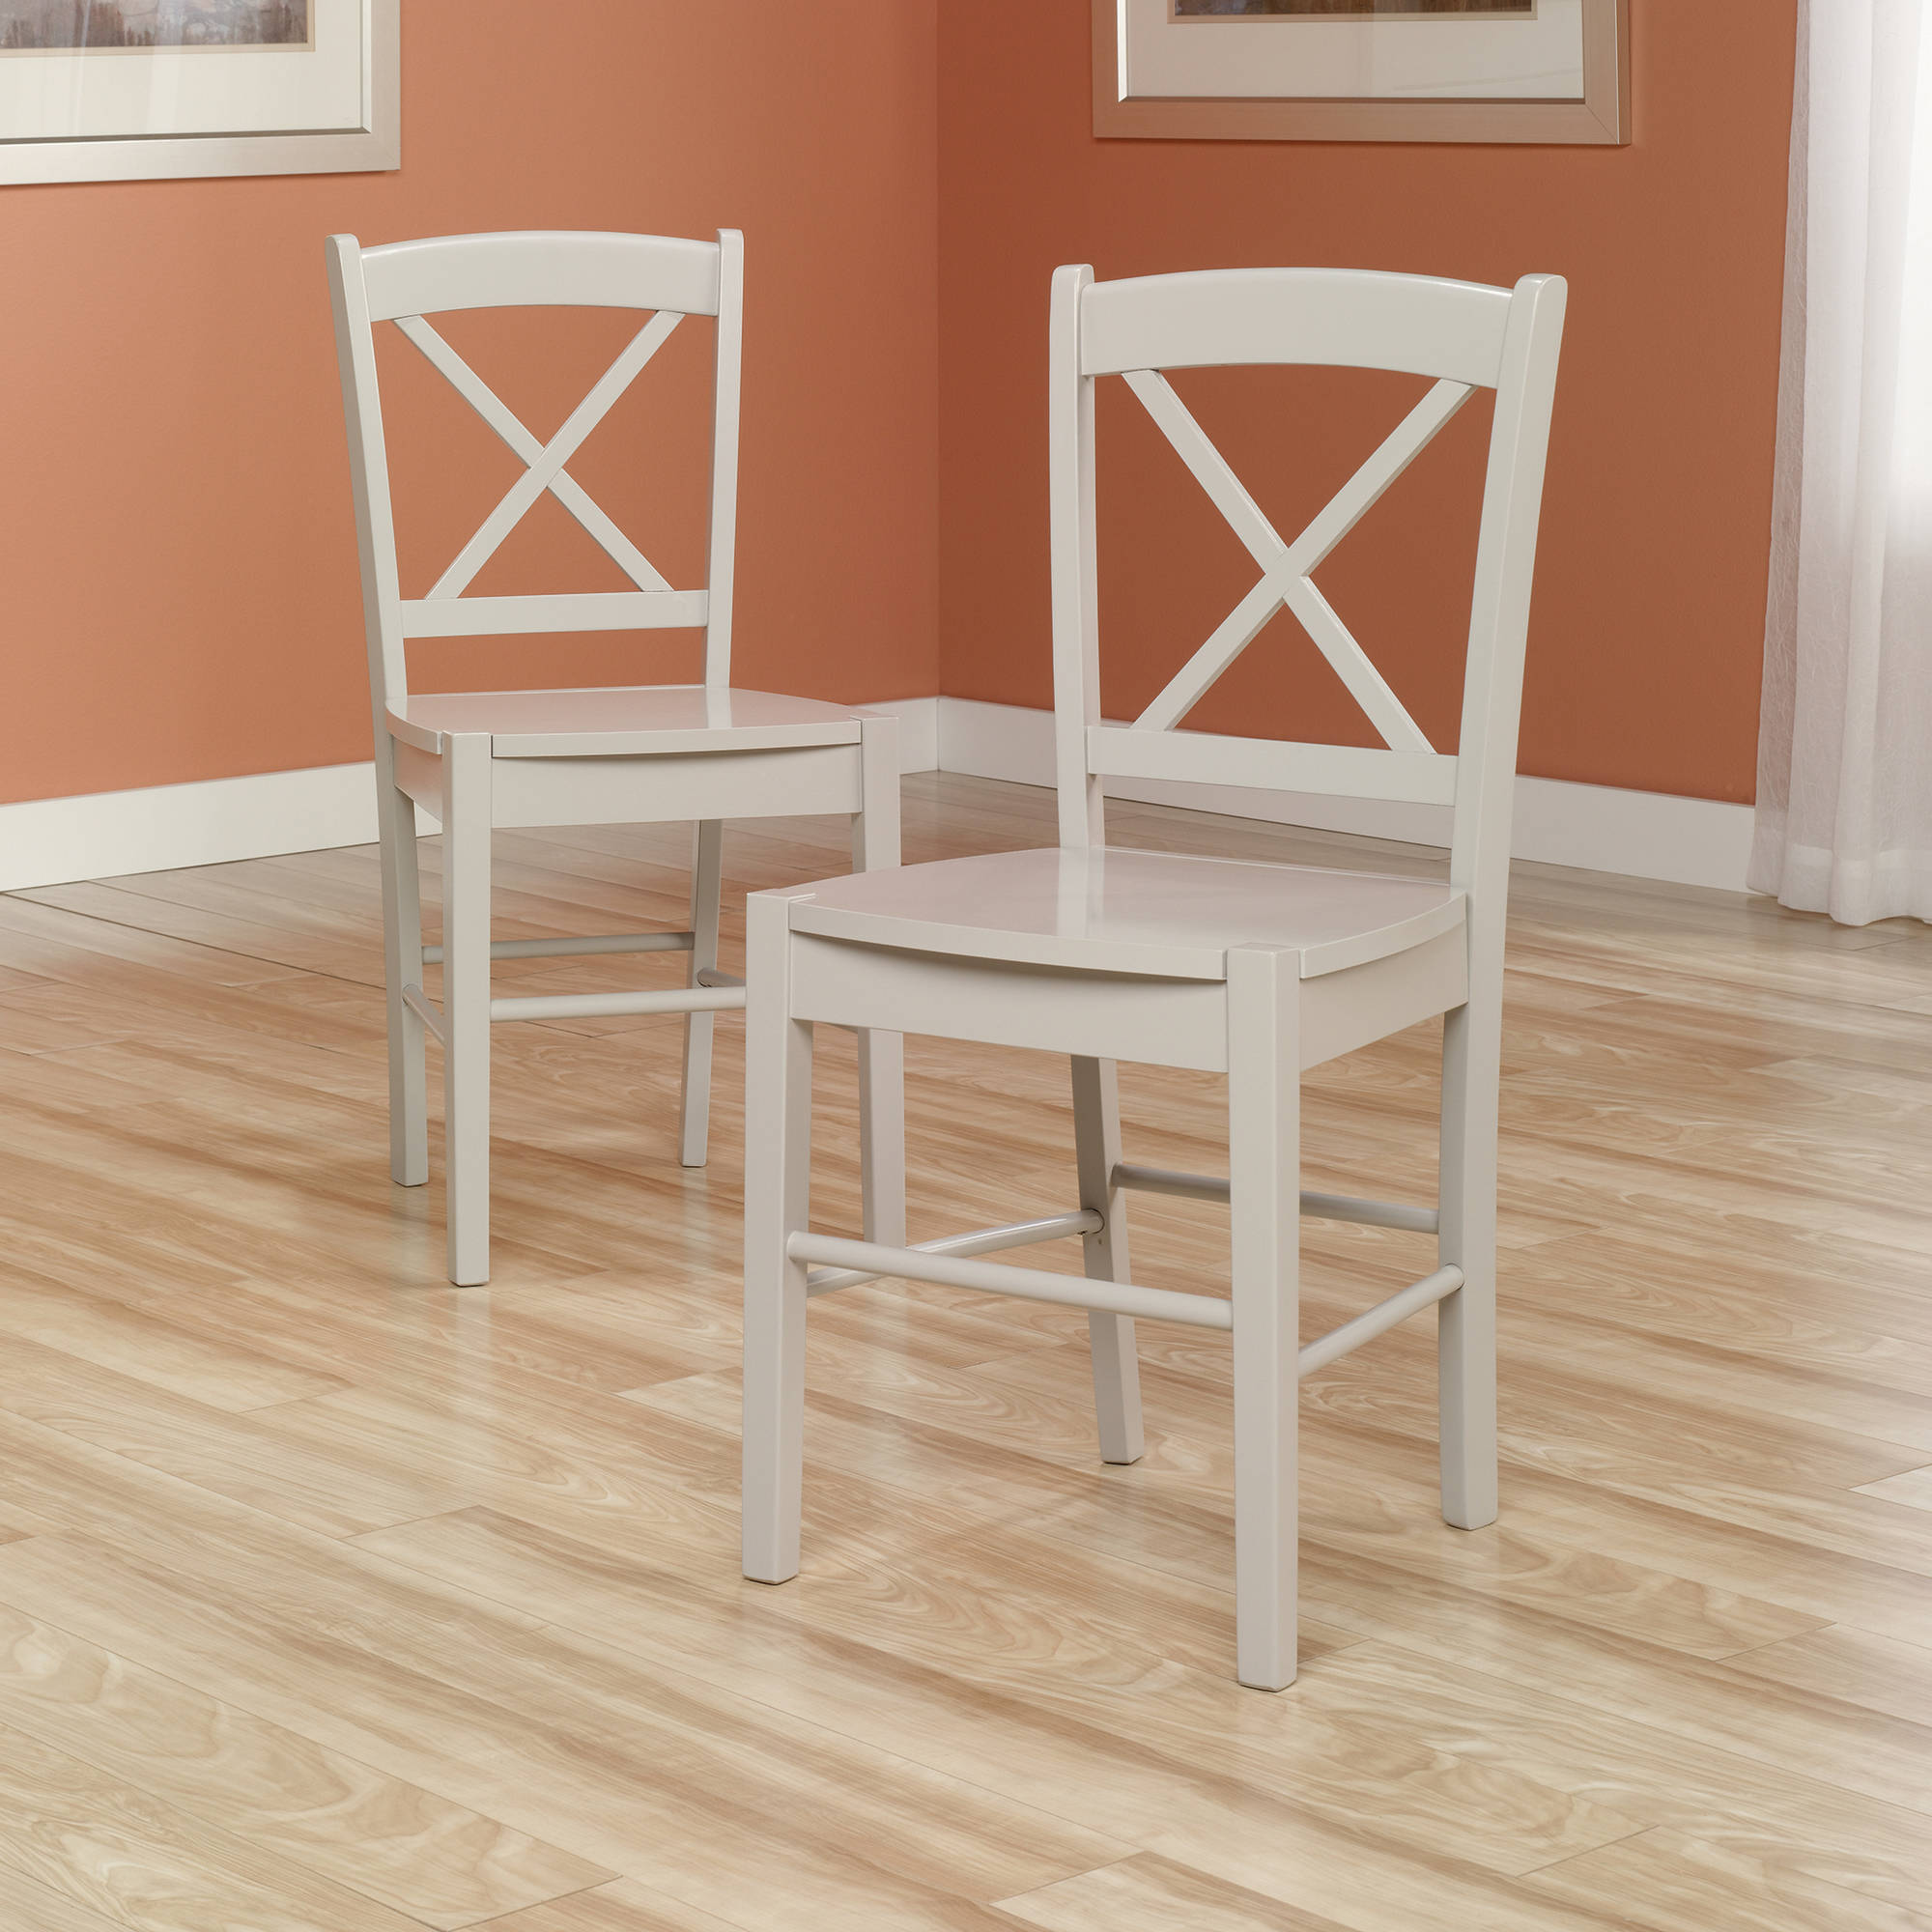 Sauder Original Cottage Cross-Back Chairs, Set of 2, Multiple Colors